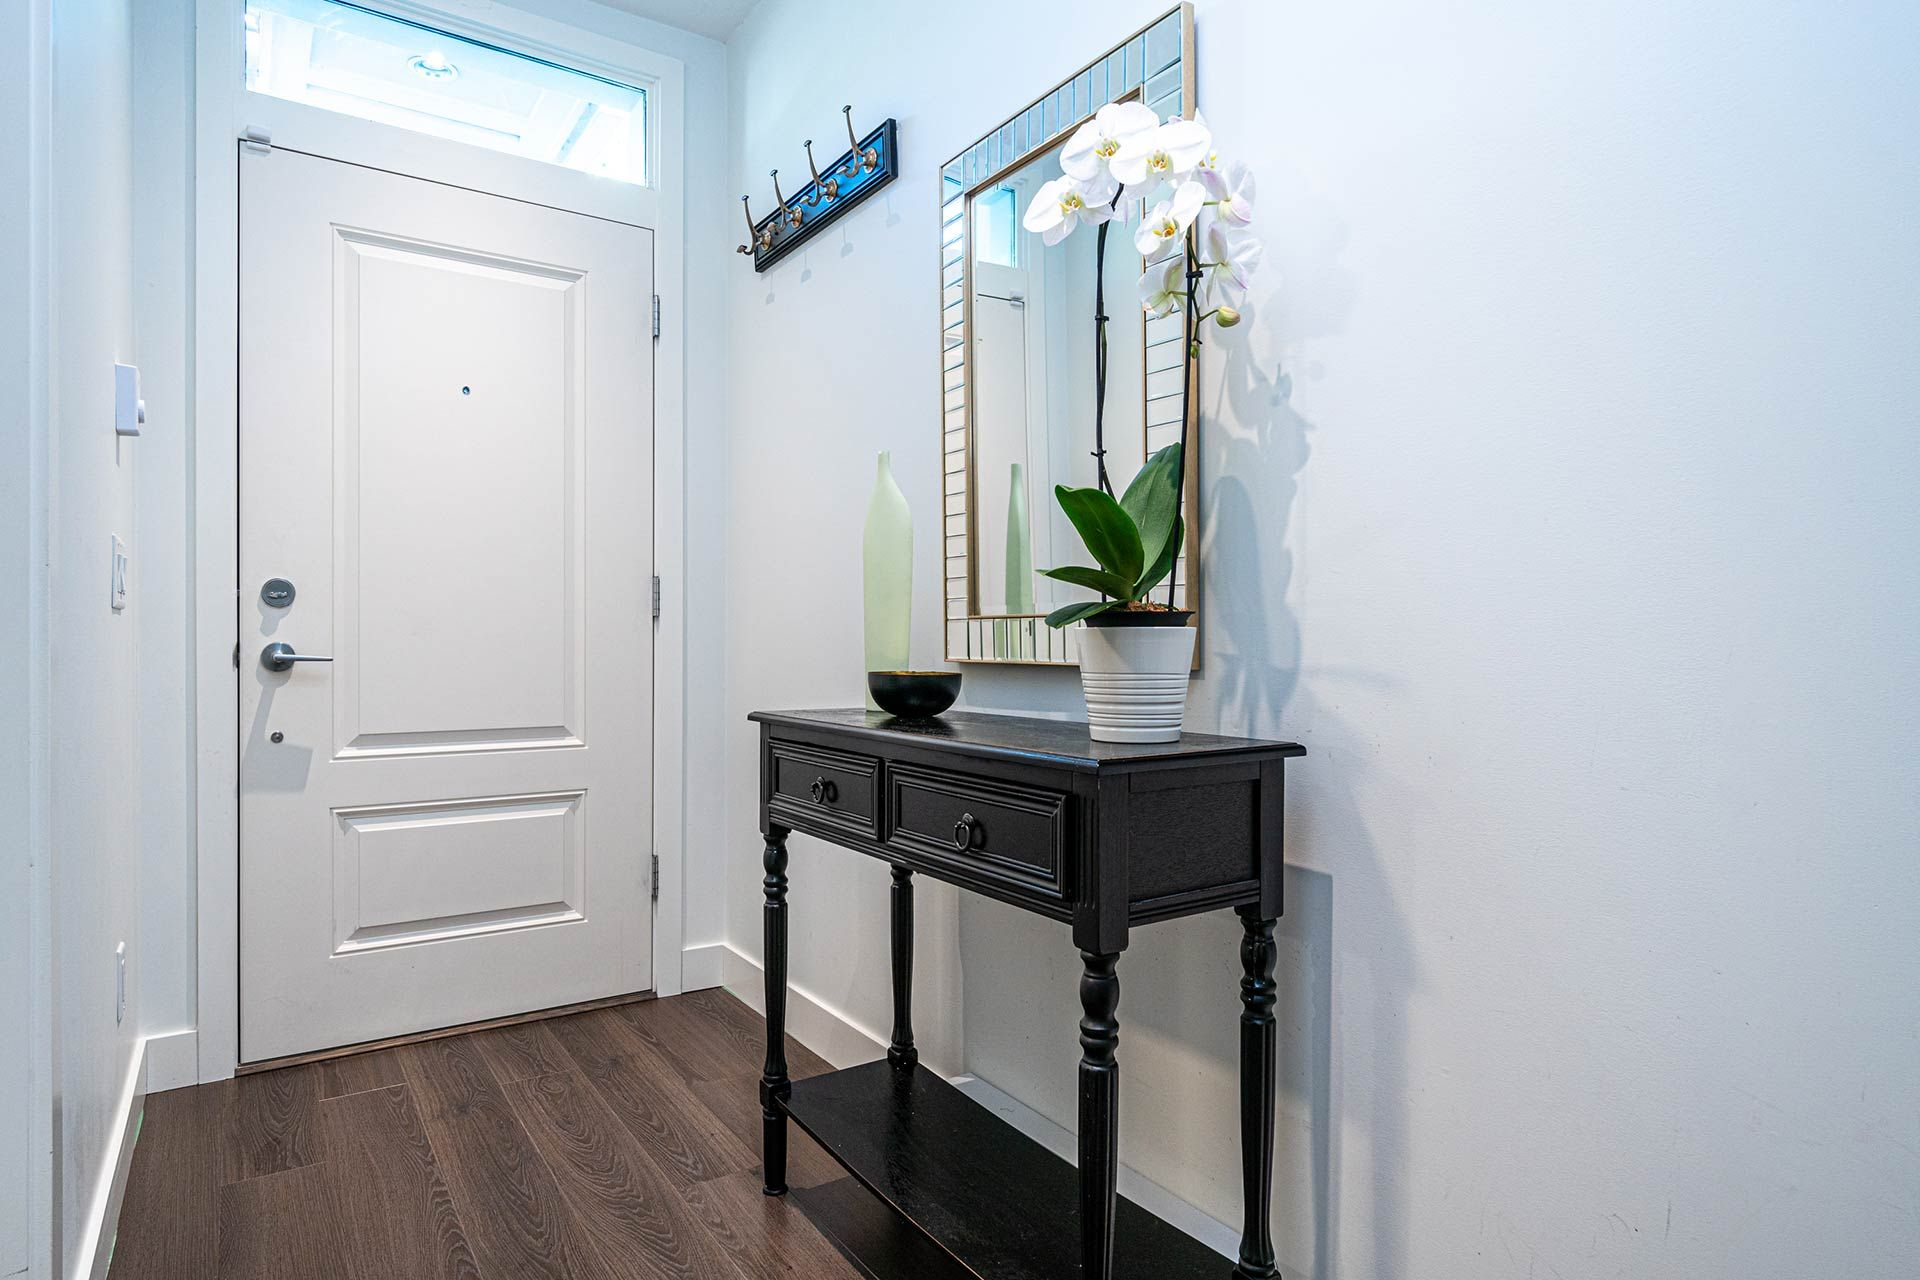 """Photo 38: Photos: 154 548 FOSTER Avenue in Coquitlam: Coquitlam West Townhouse for sale in """"BLACK + WHITE"""" : MLS®# R2587208"""